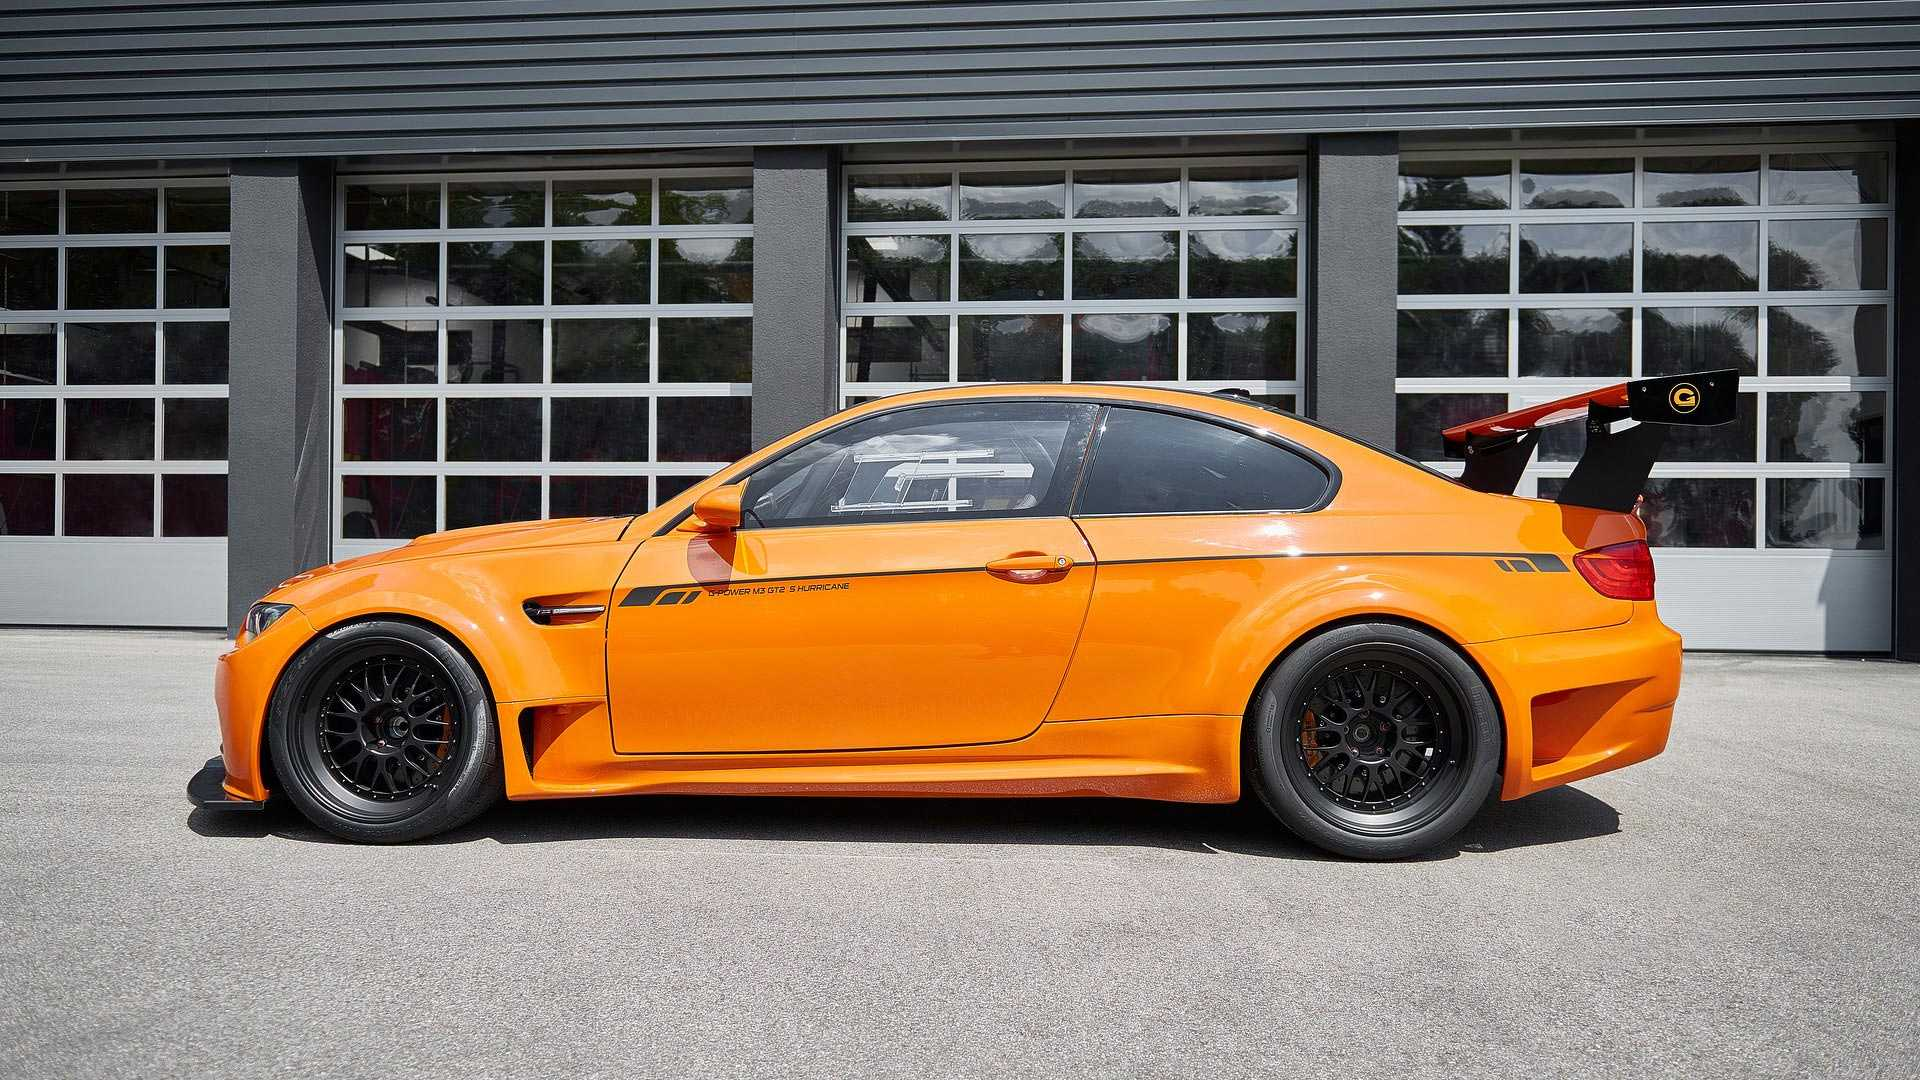 g-power-bmw-m3-gt2-s-hurricane (1)